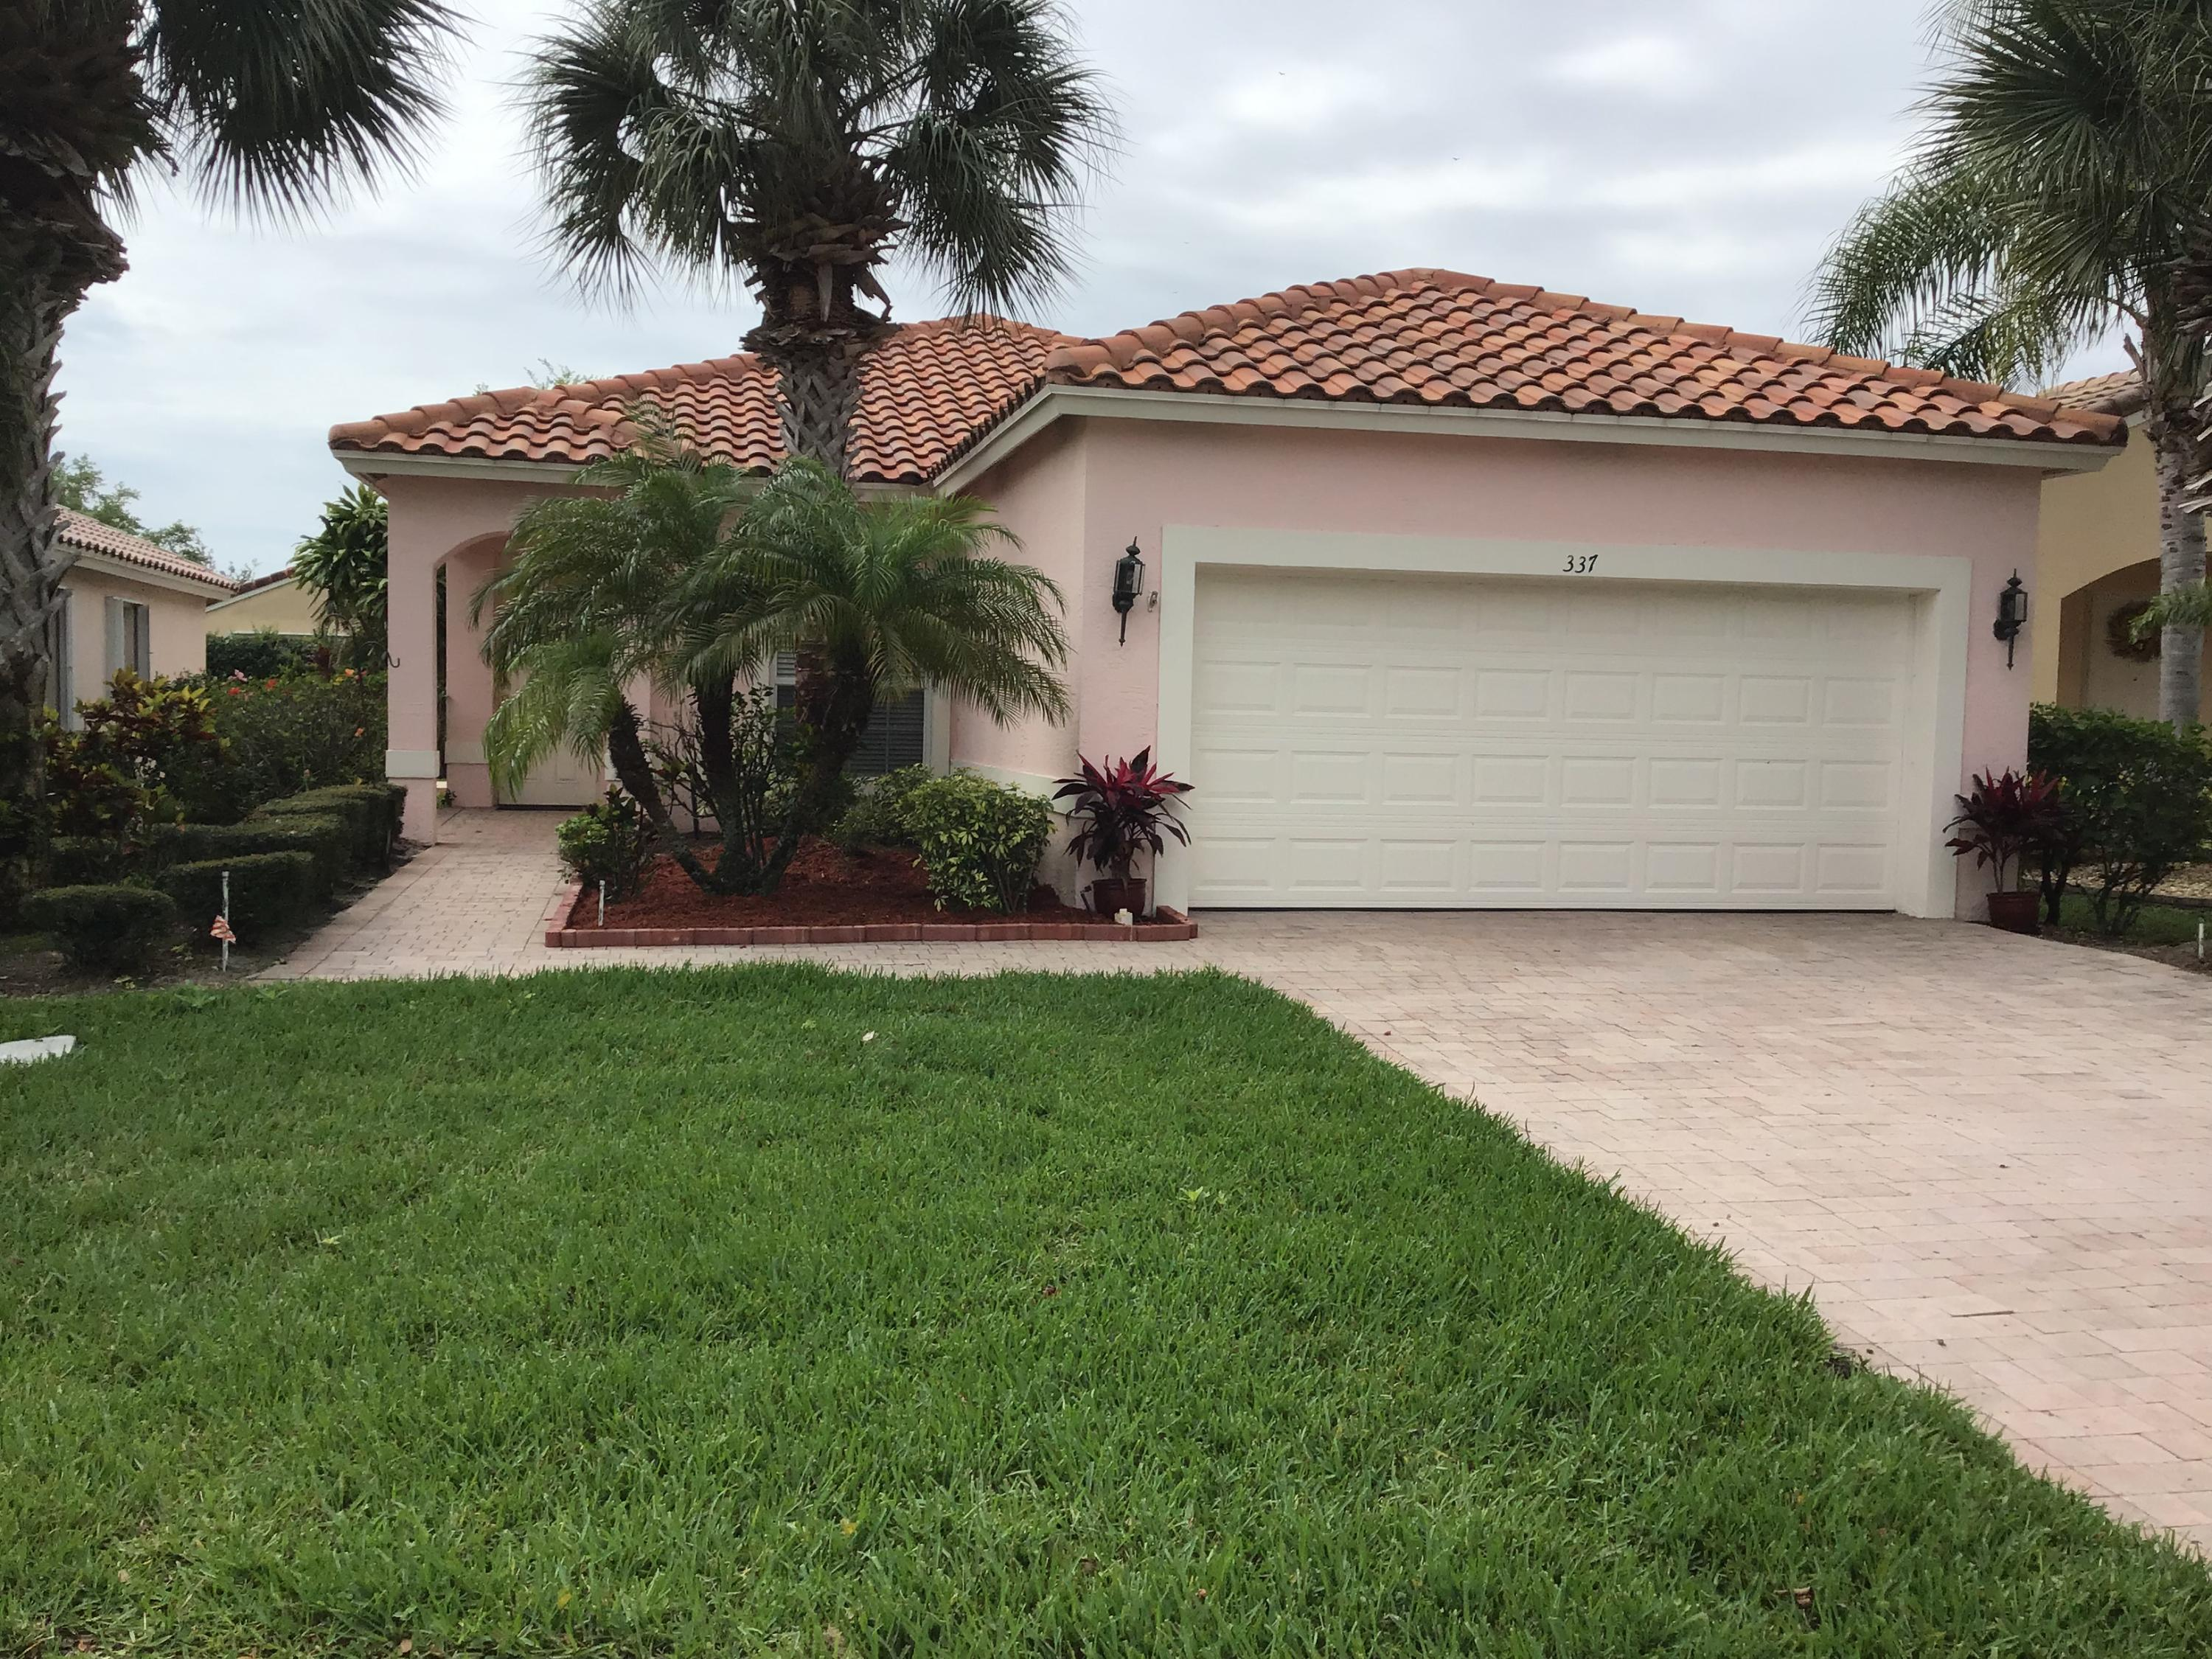 337 Nw Breezy Point Loop, Port Saint Lucie, FL 34986